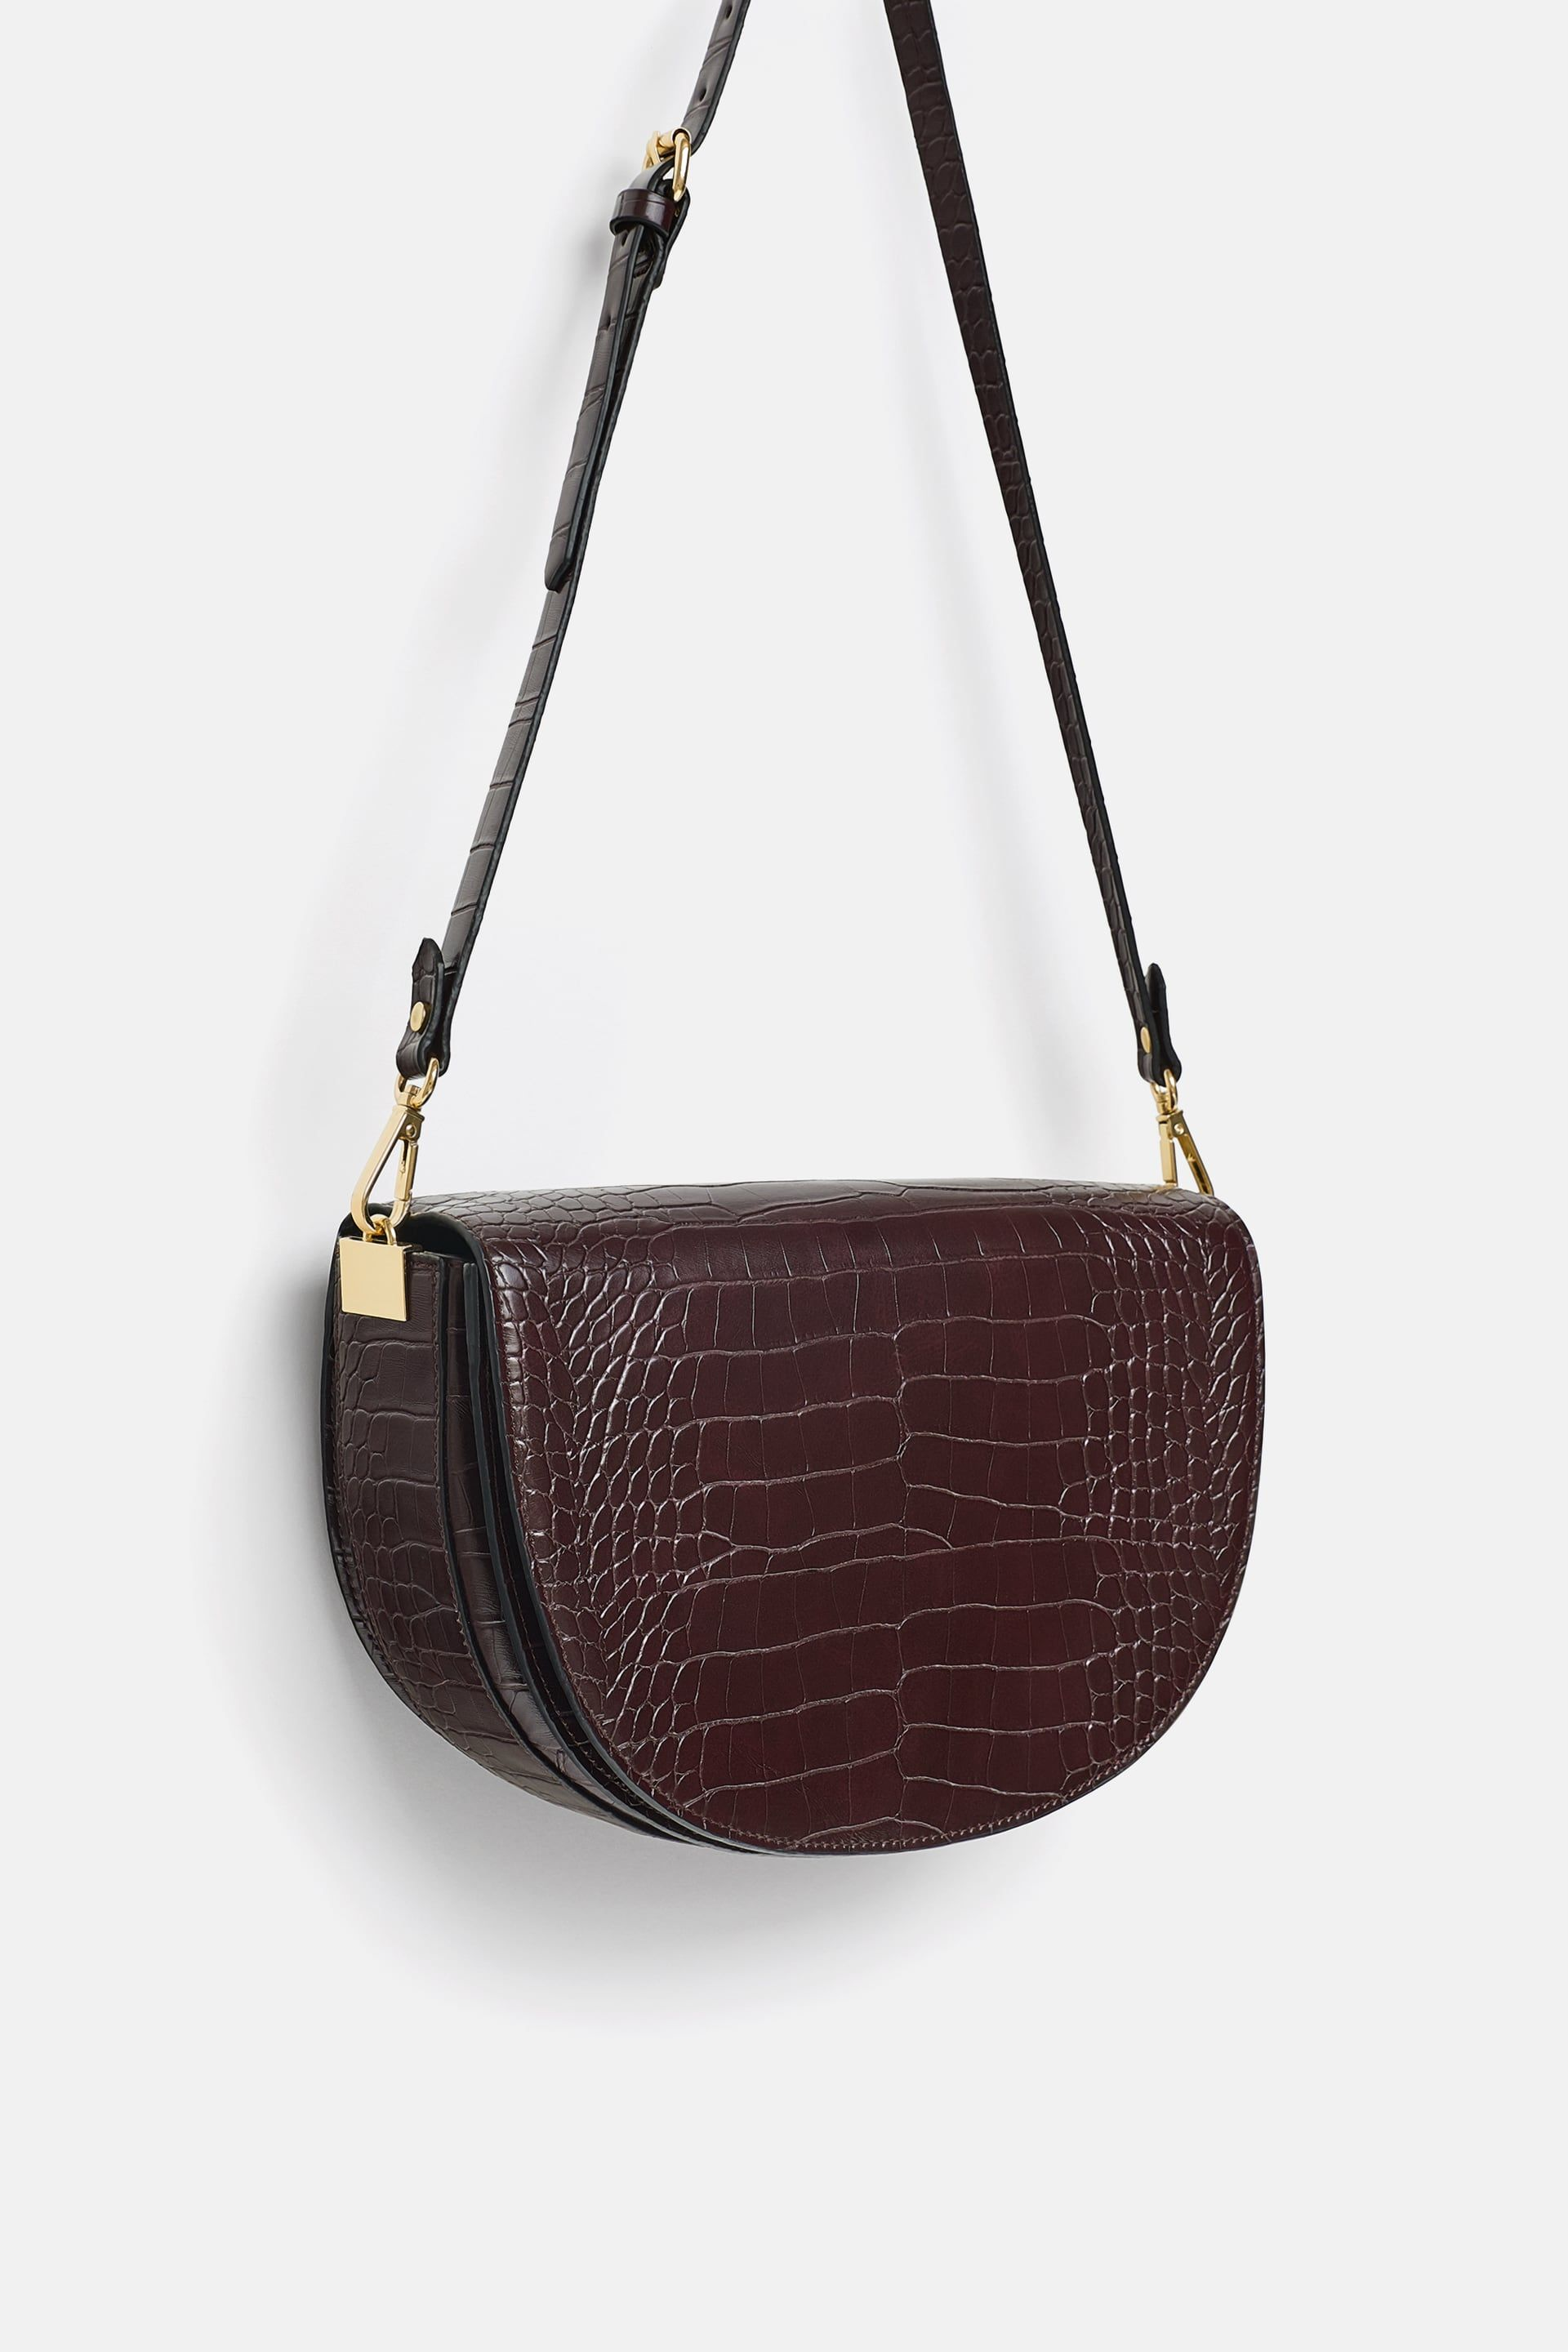 a7db474f99 Image 3 of CROCODILE PRINT CROSSBODY BAG from Zara | 2019 ...